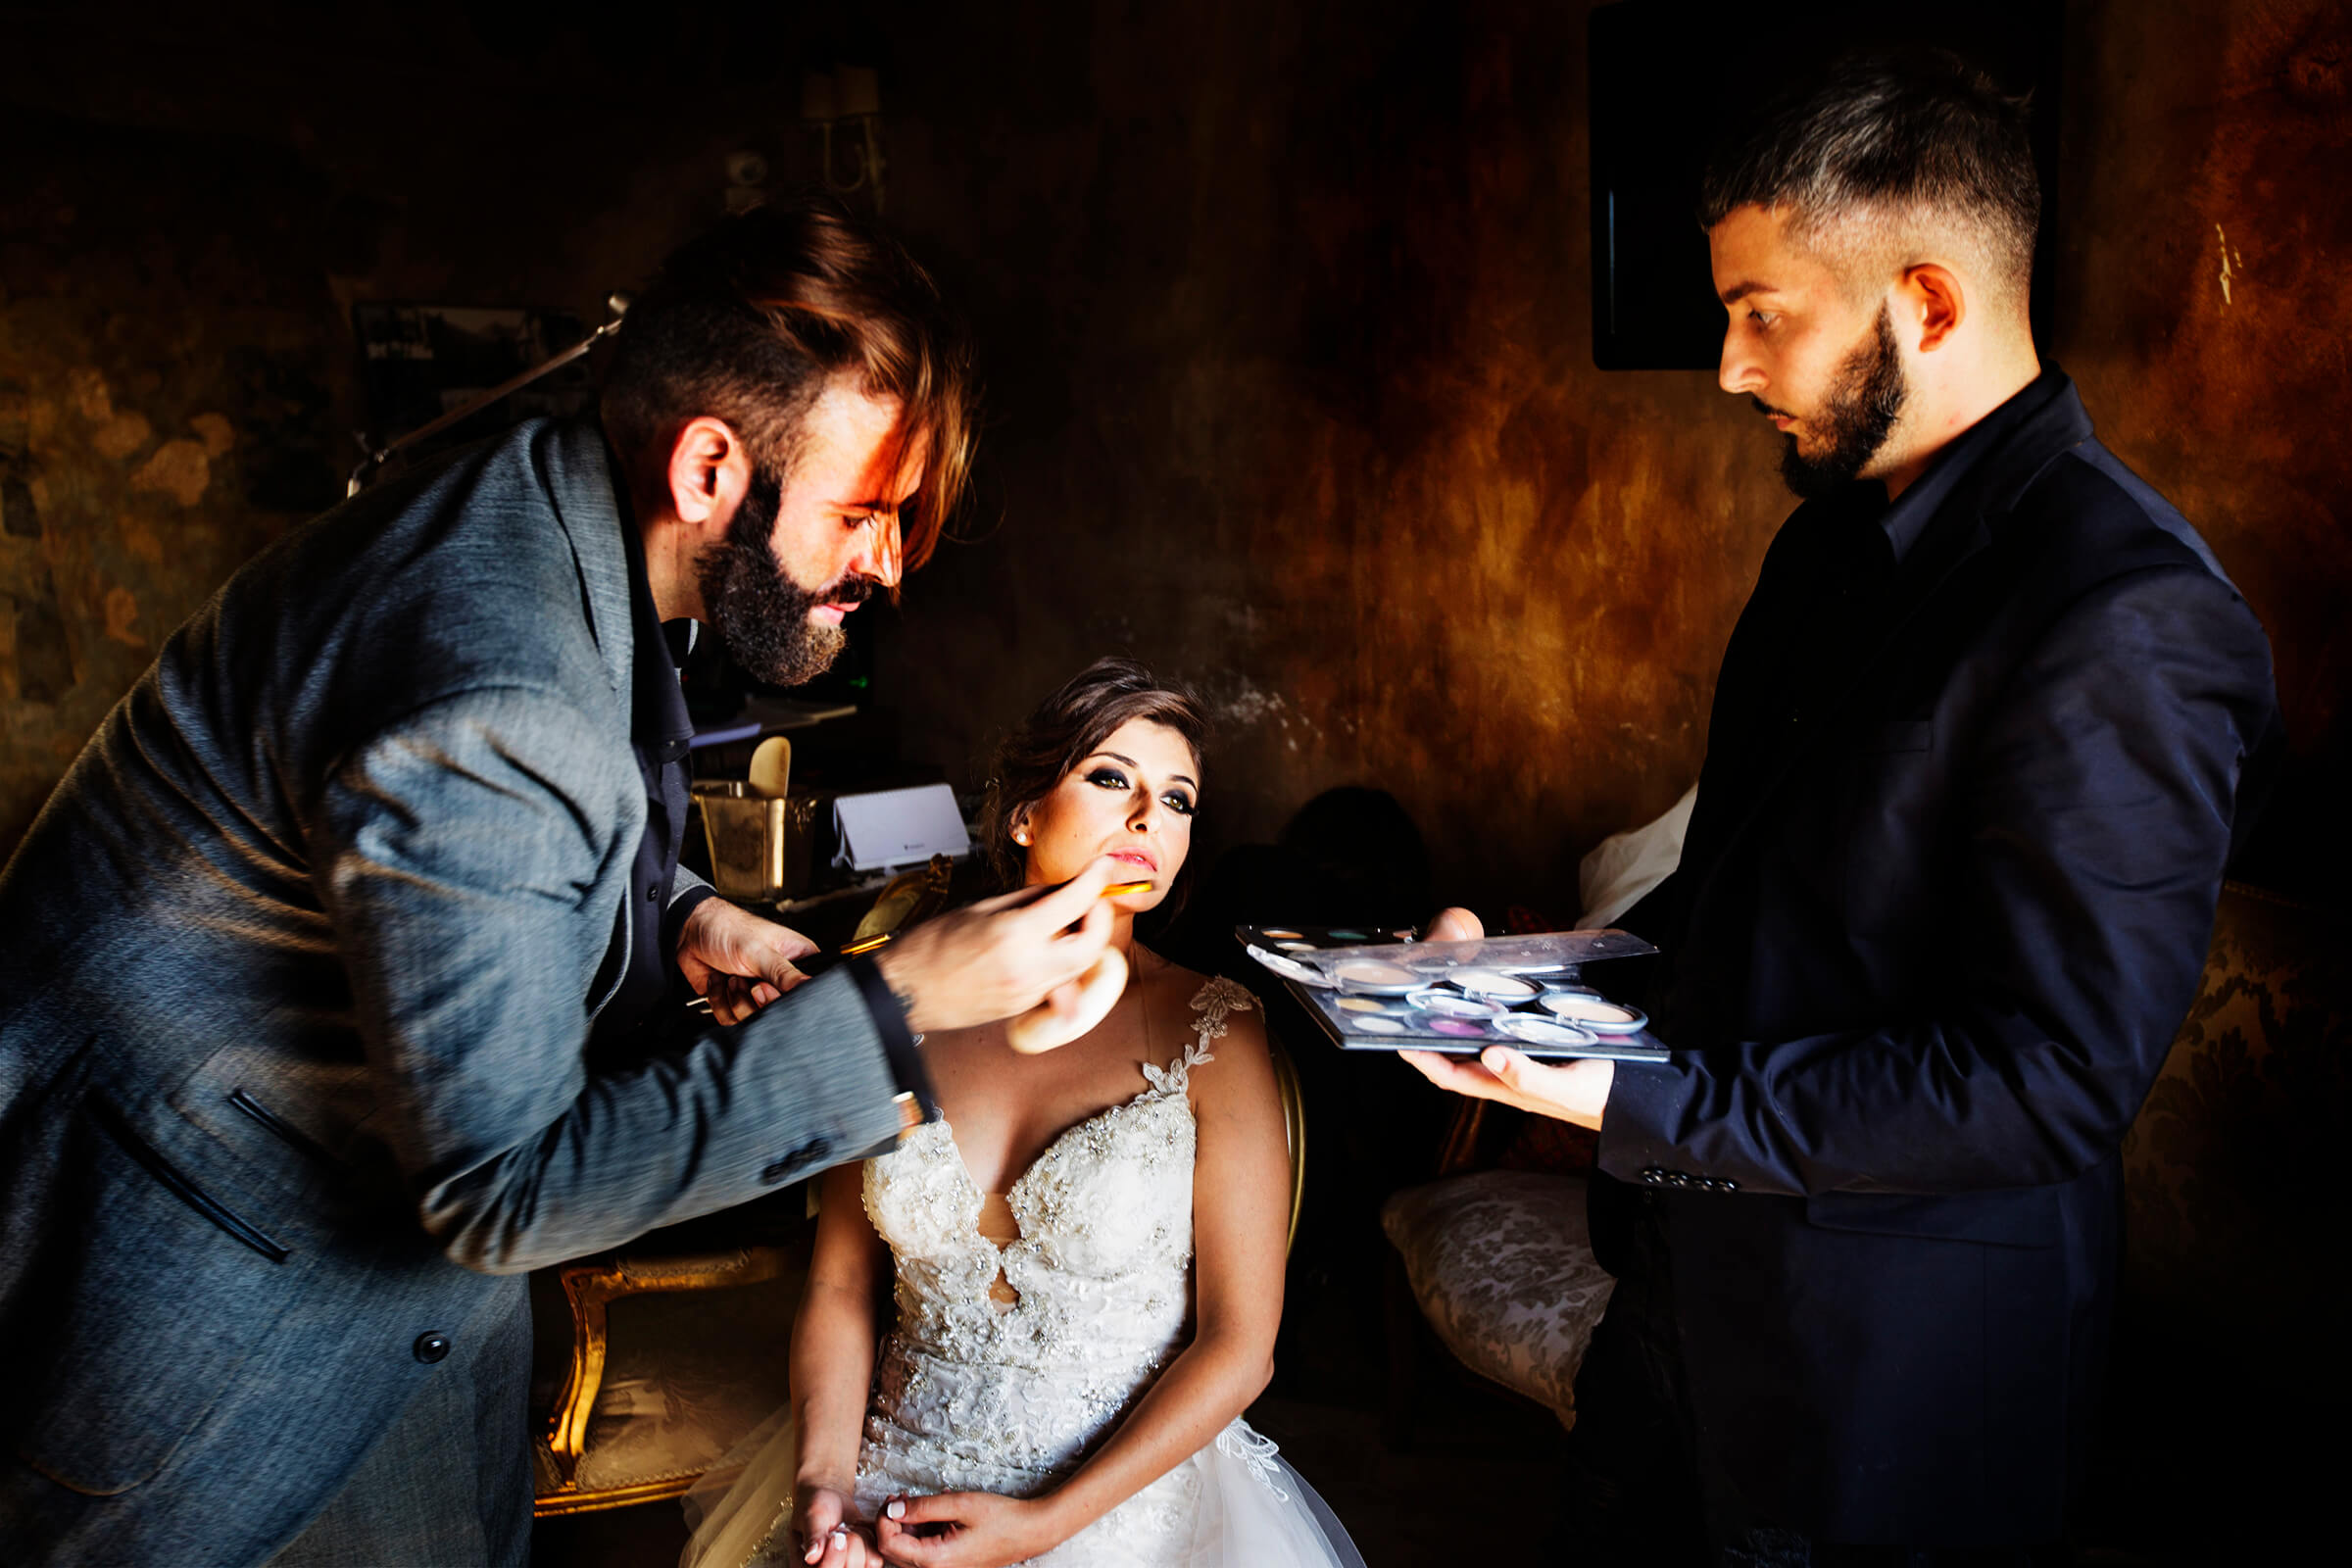 Bride with two makeup artists - photo by Nino Lombardo Photographer